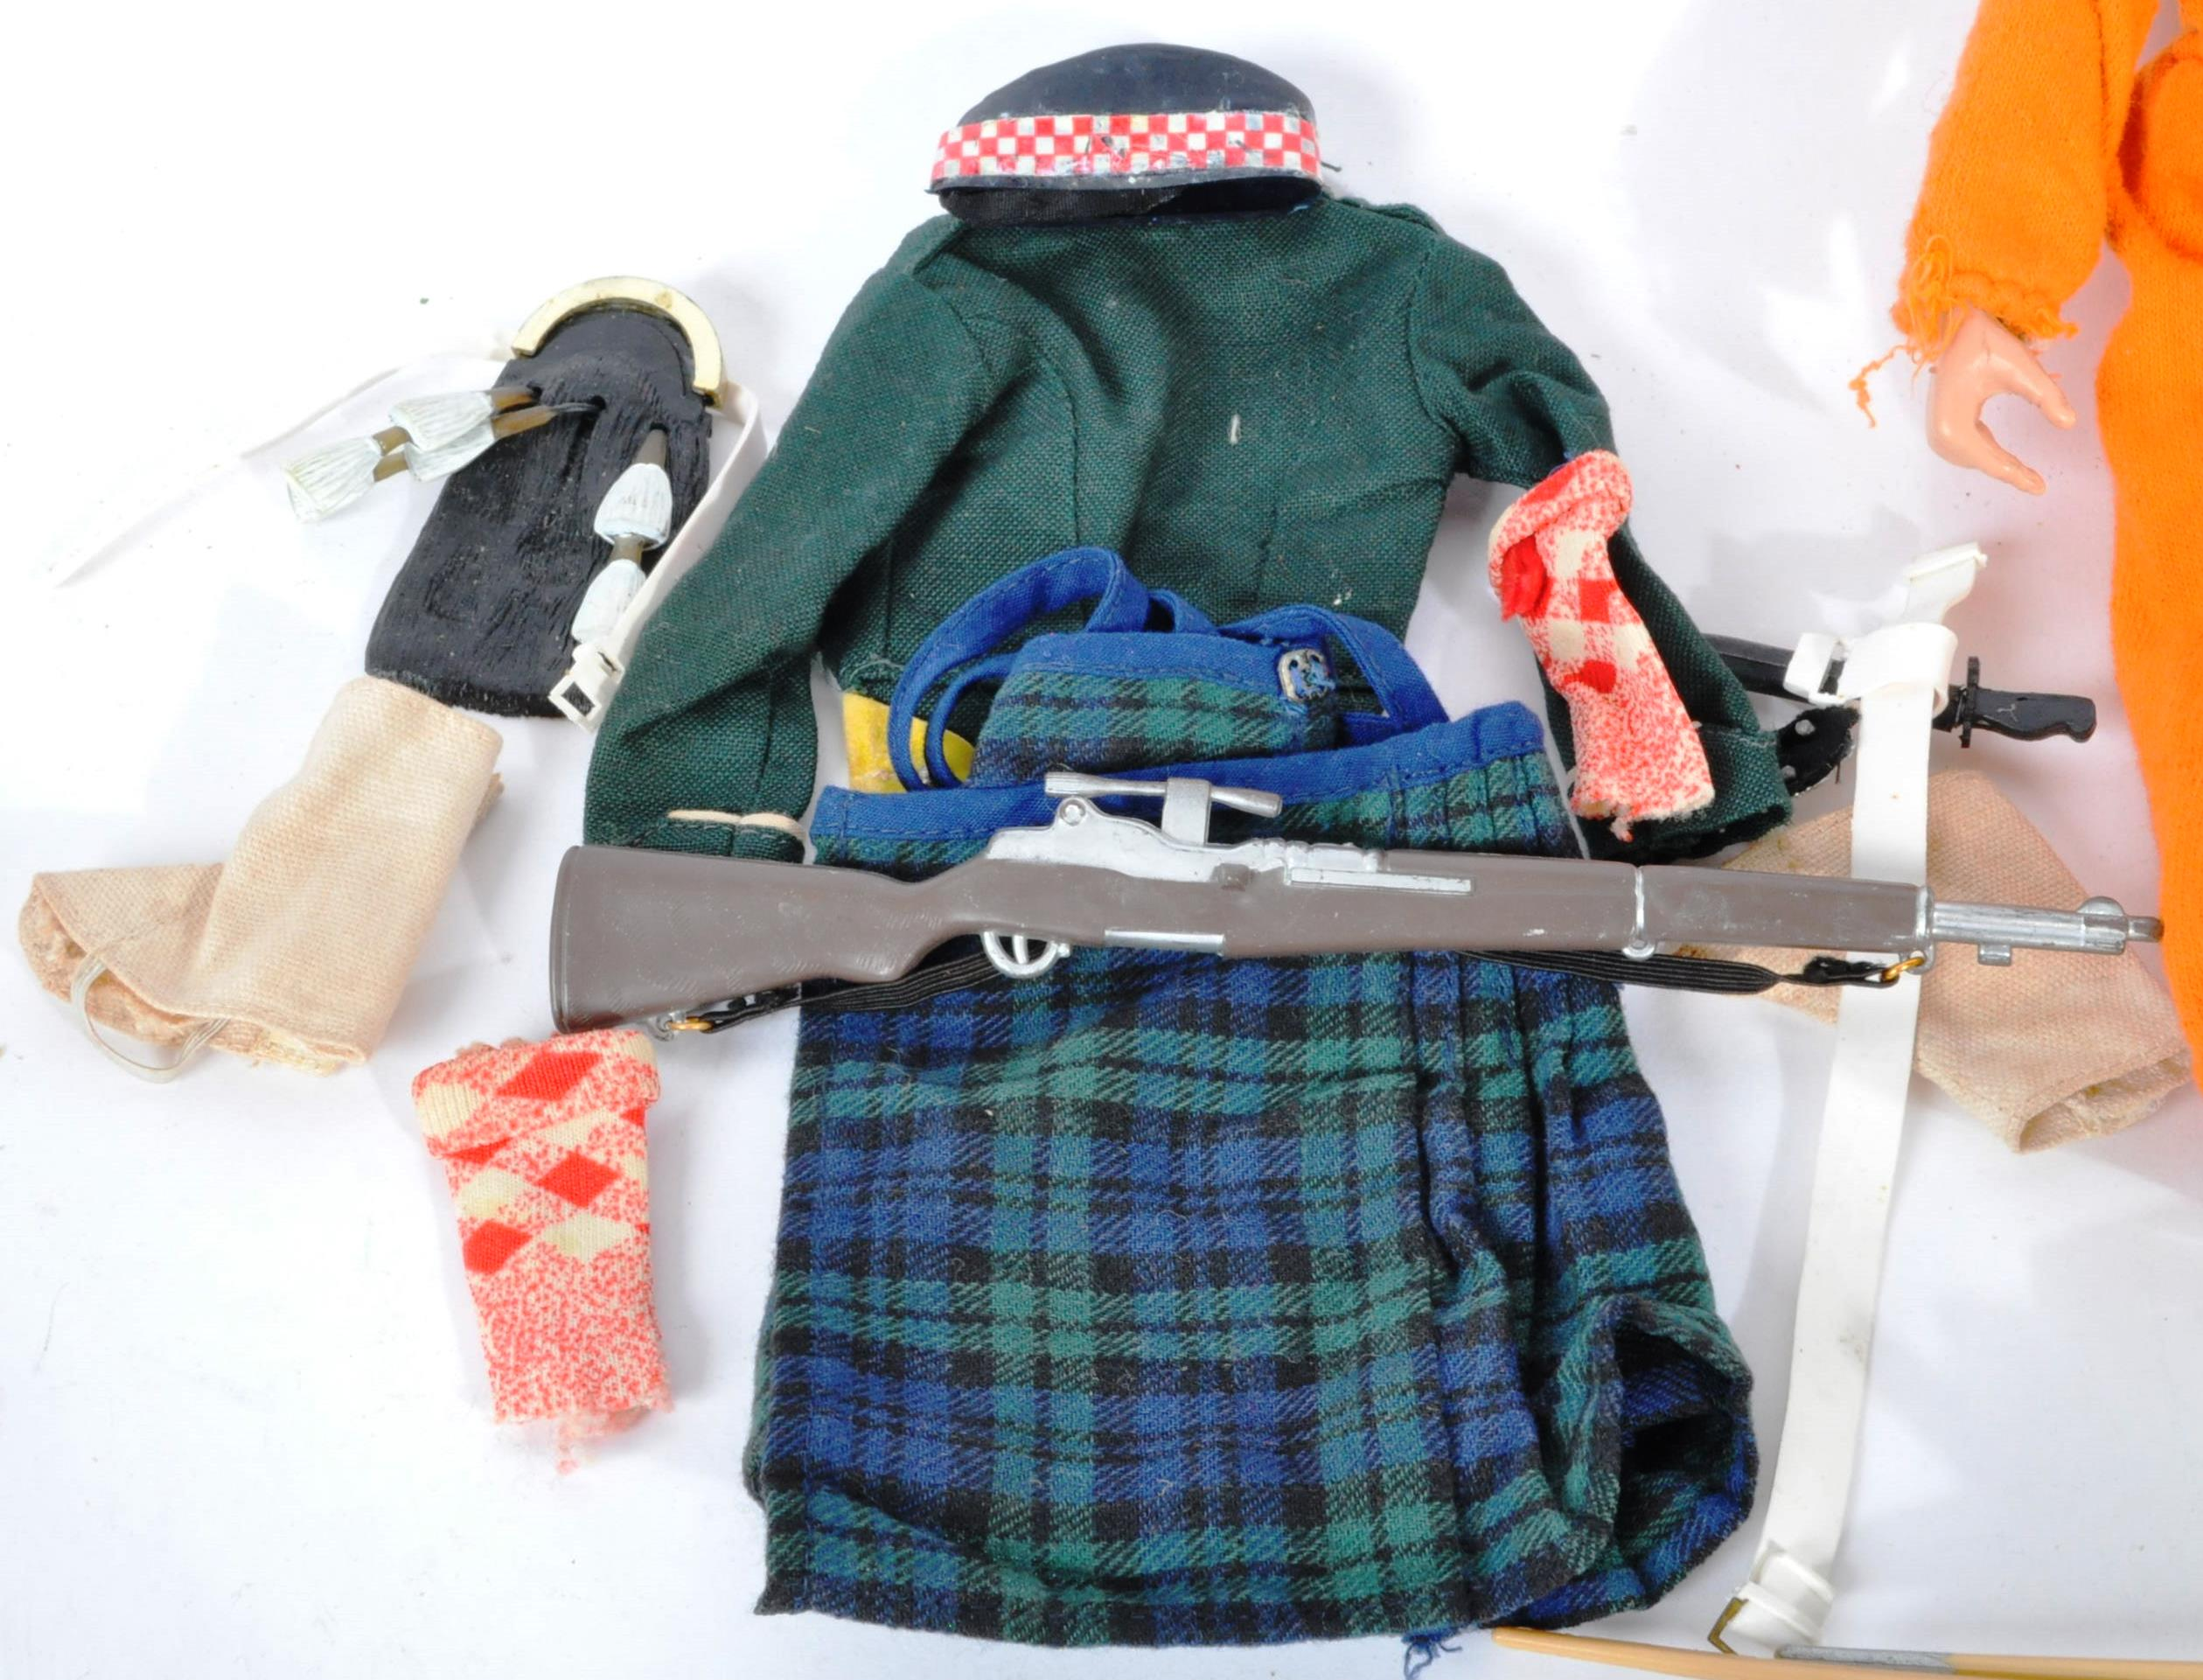 ACTION MAN - COLLECTION OF VINTAGE PALITOY UNIFORMS & FIGURE - Image 4 of 9